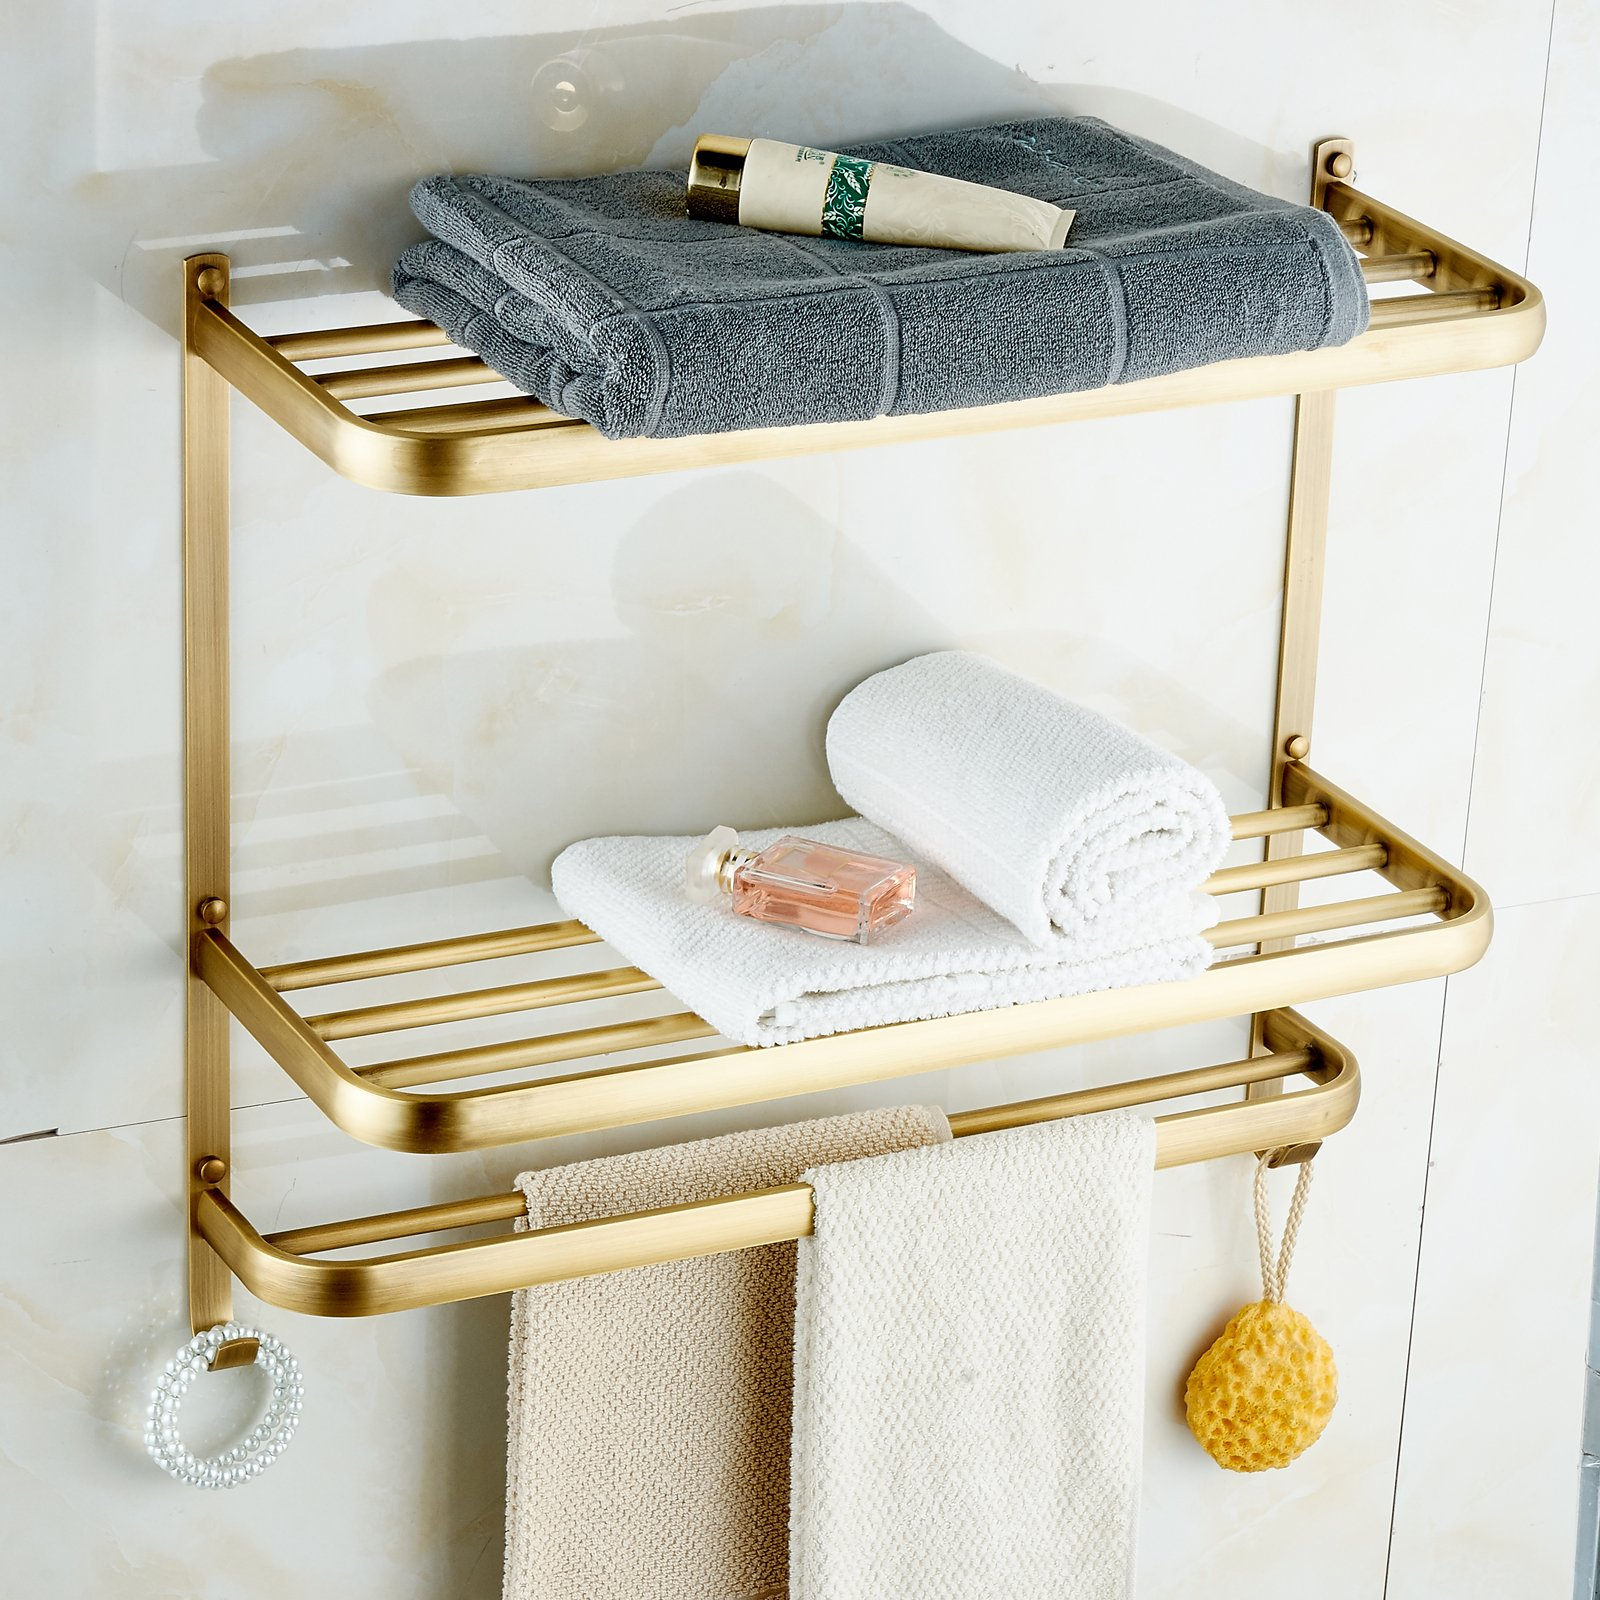 Rozin Dual Tiers Bathroom Towel Holder Shelf Wall Mounted Towel Rack Antique Brass Finish